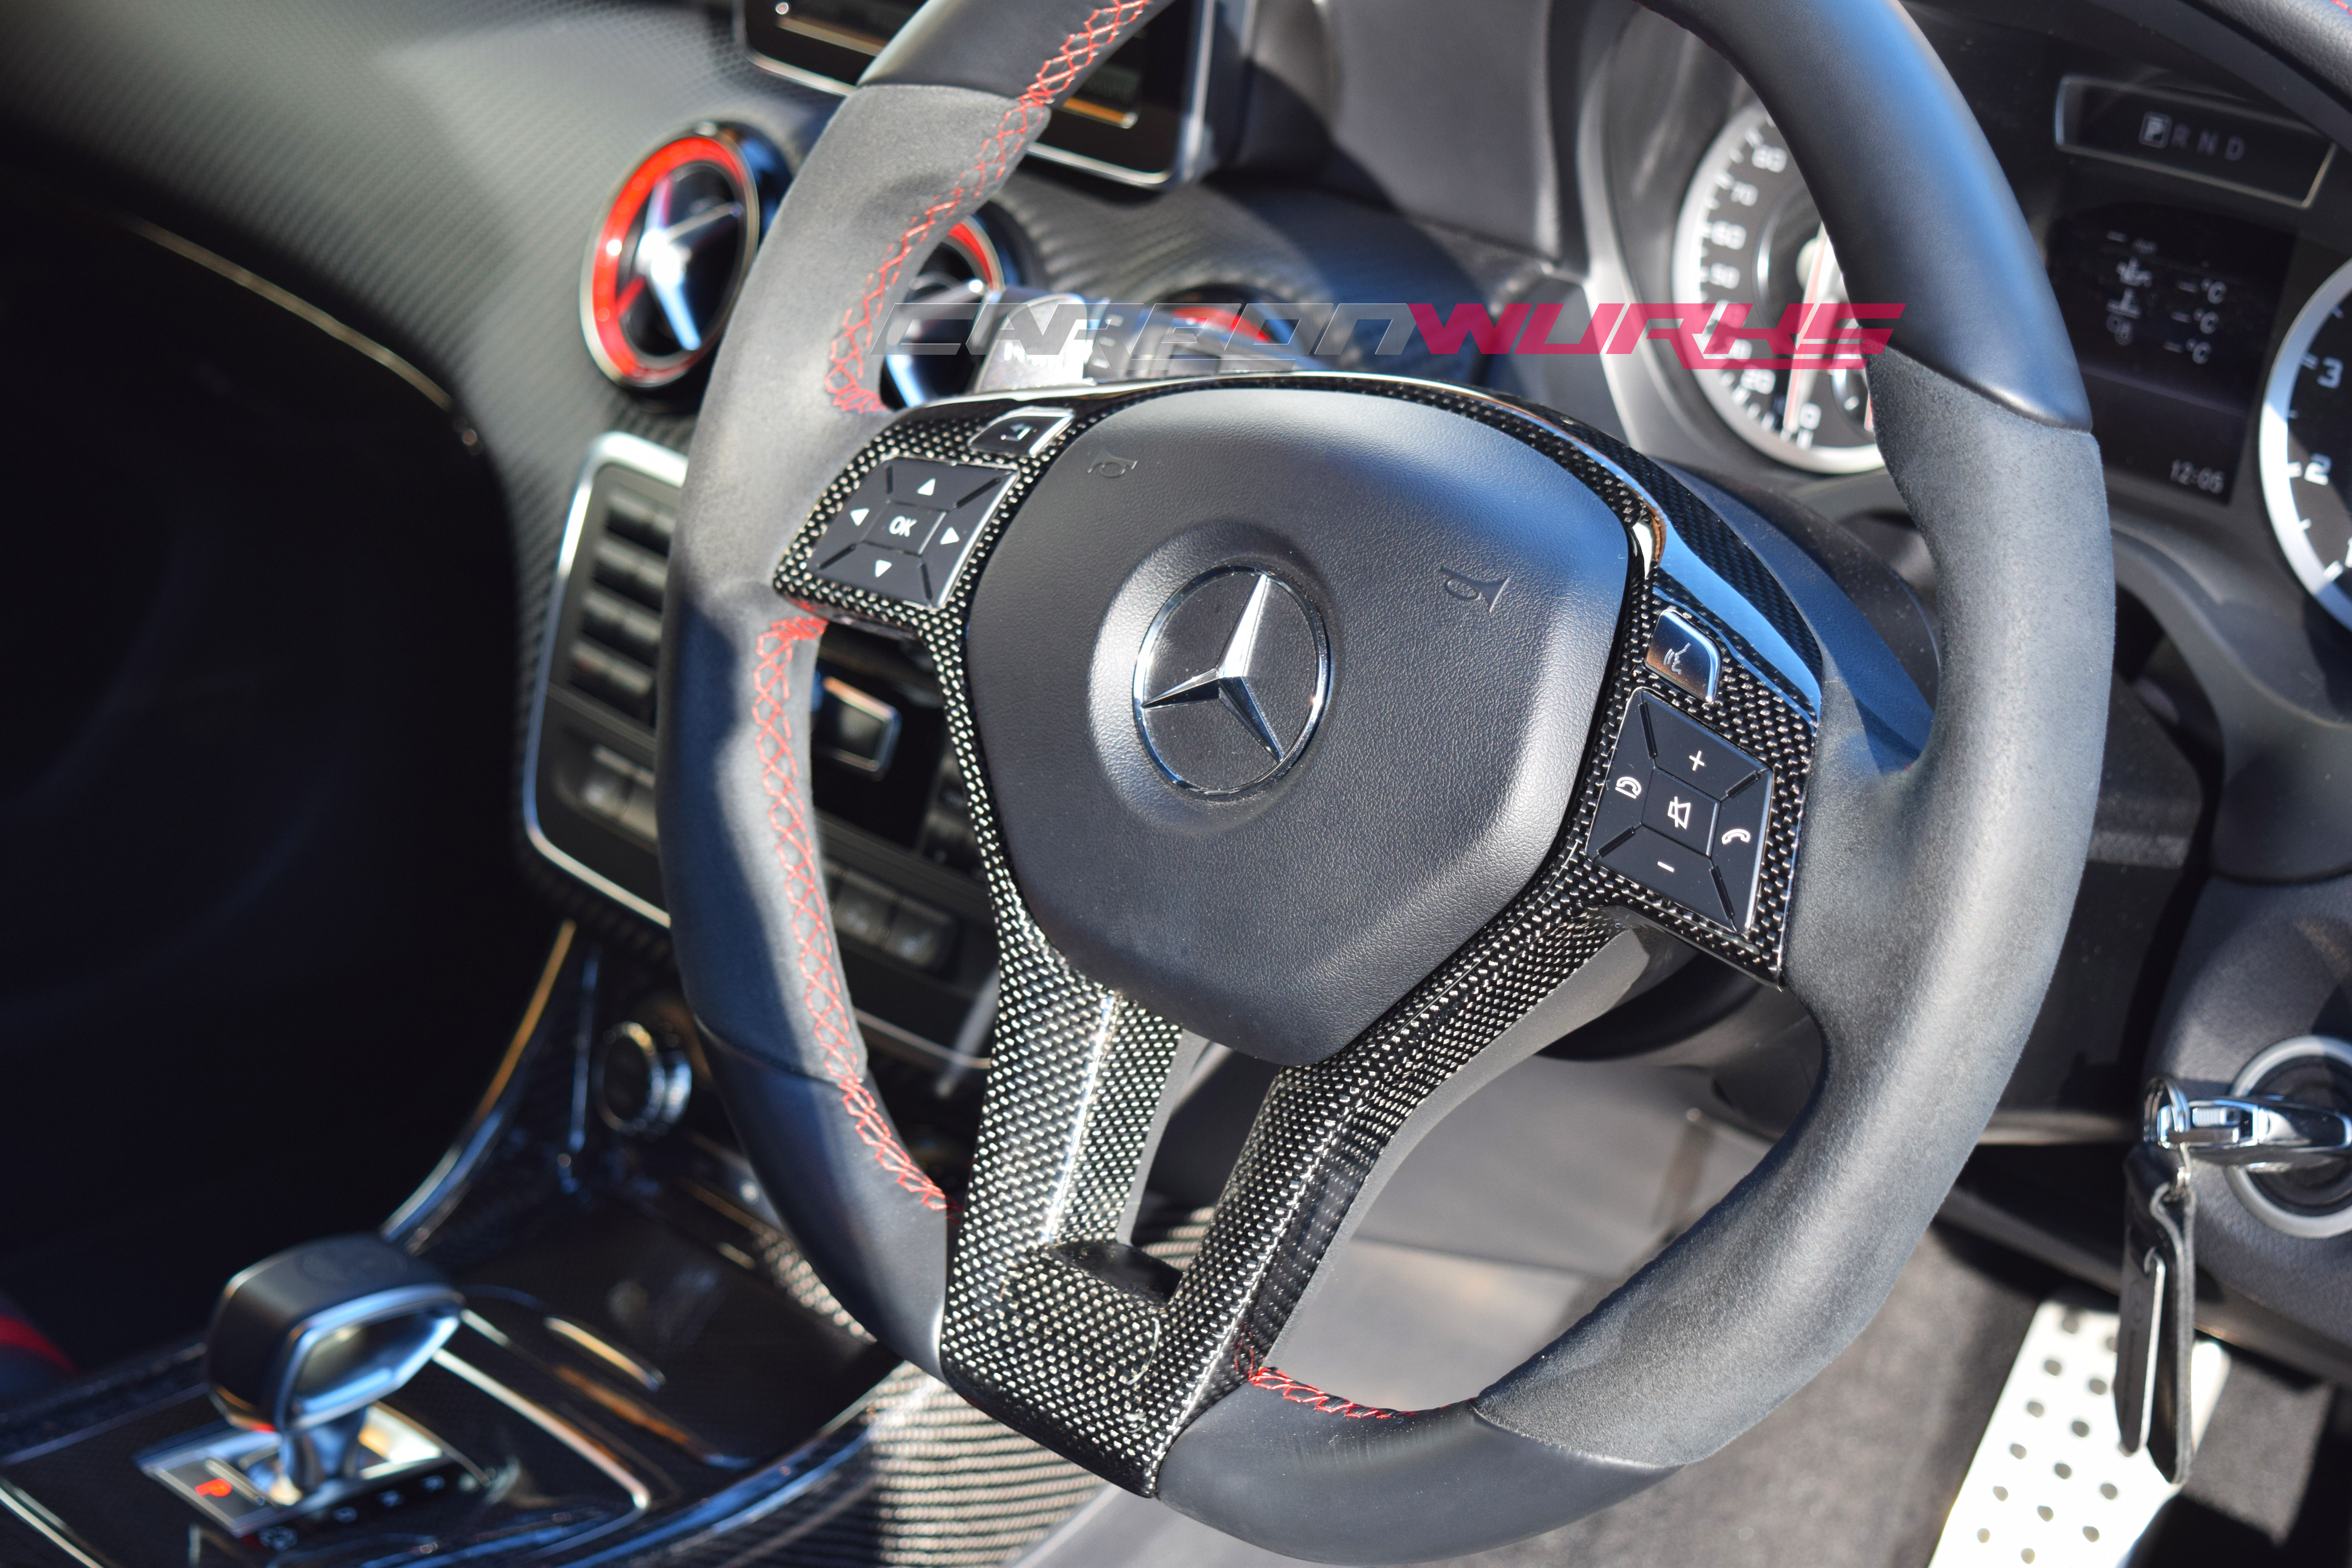 Carbonwurks Custom Carbon Fibremercedes Benz A Class Carbon Fibre Steering Wheel Carbonwurks